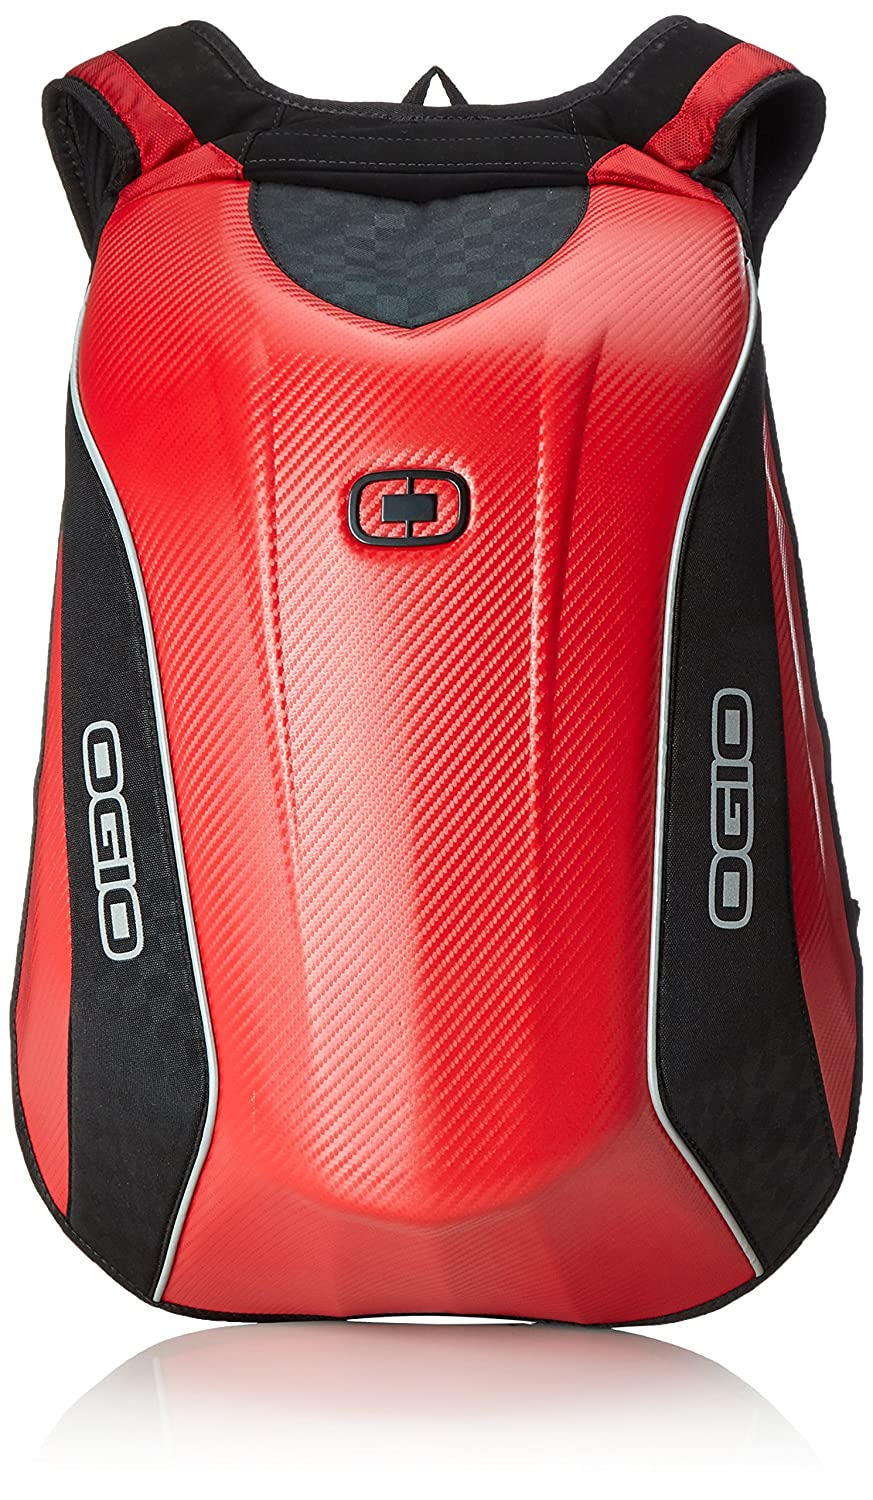 Ogio Mach 5 >> Ogio Unisex S 123006 02 Red No Drag Mach 5 Motorcycle Bag Pack One